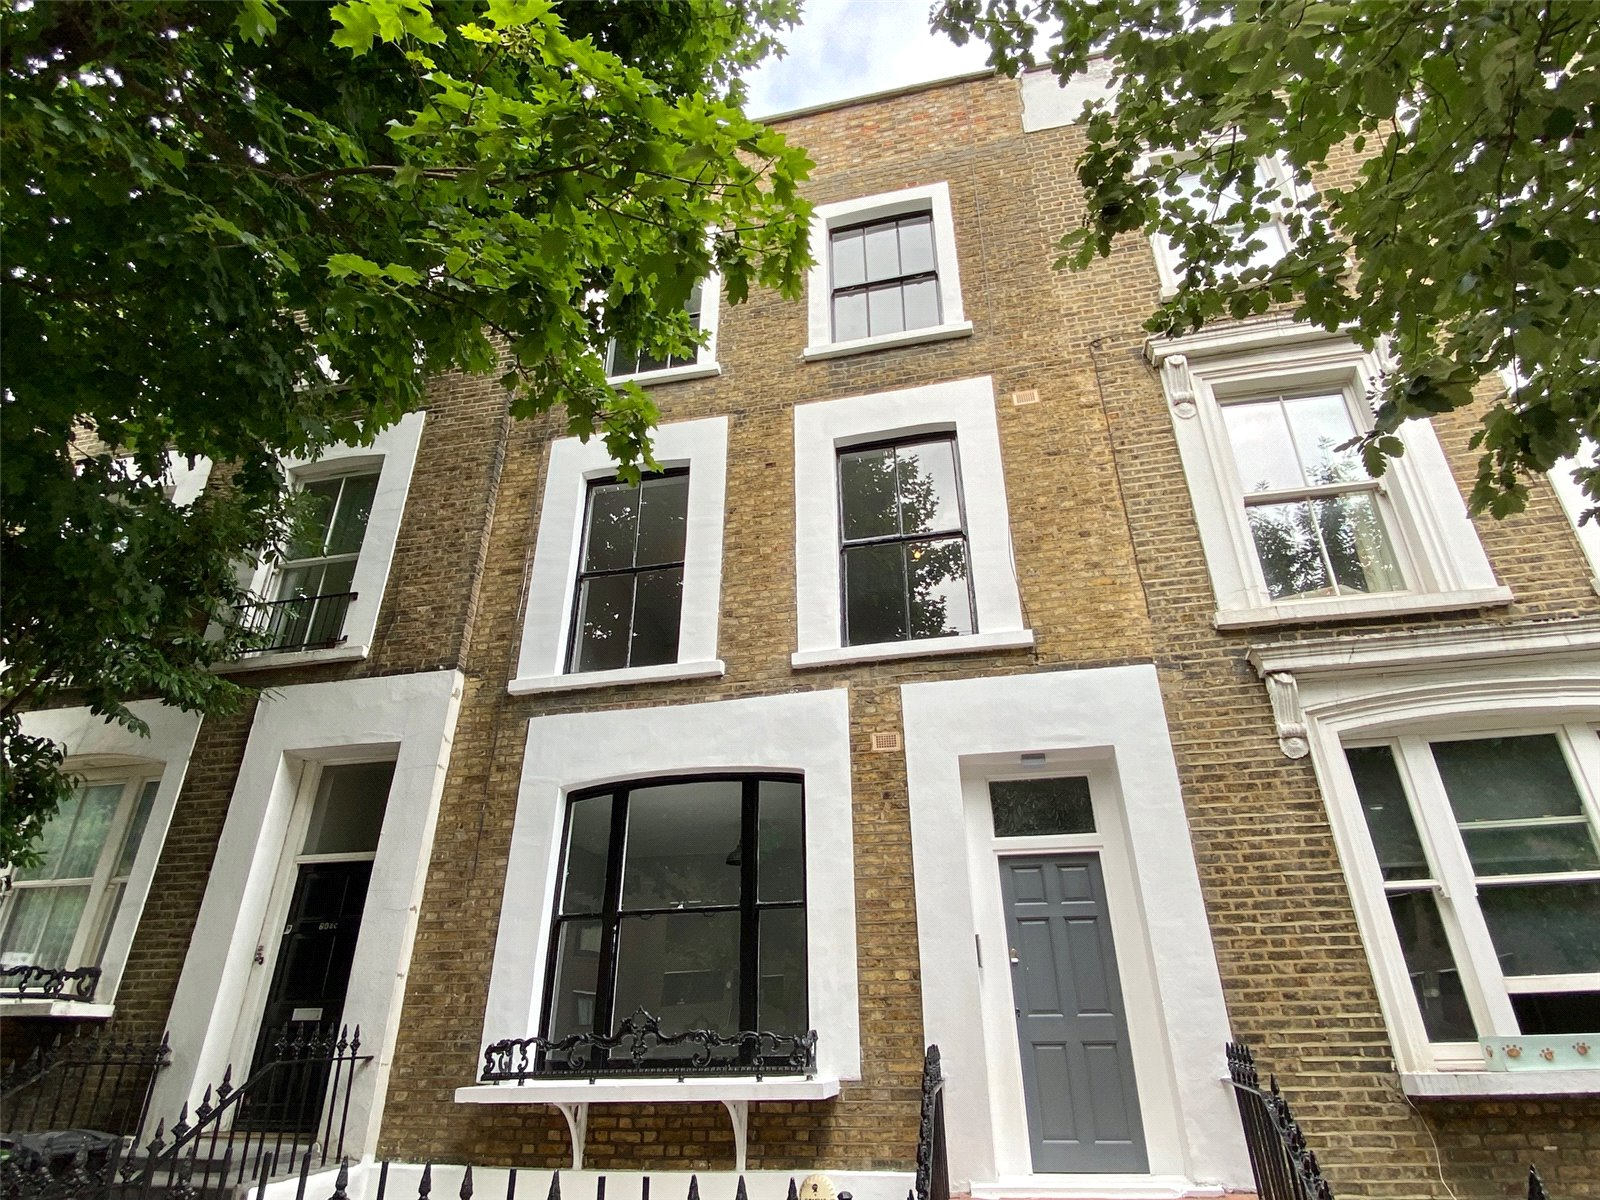 2 bed apartment for sale in Chalk Farm, NW5 4DA  - Property Image 1